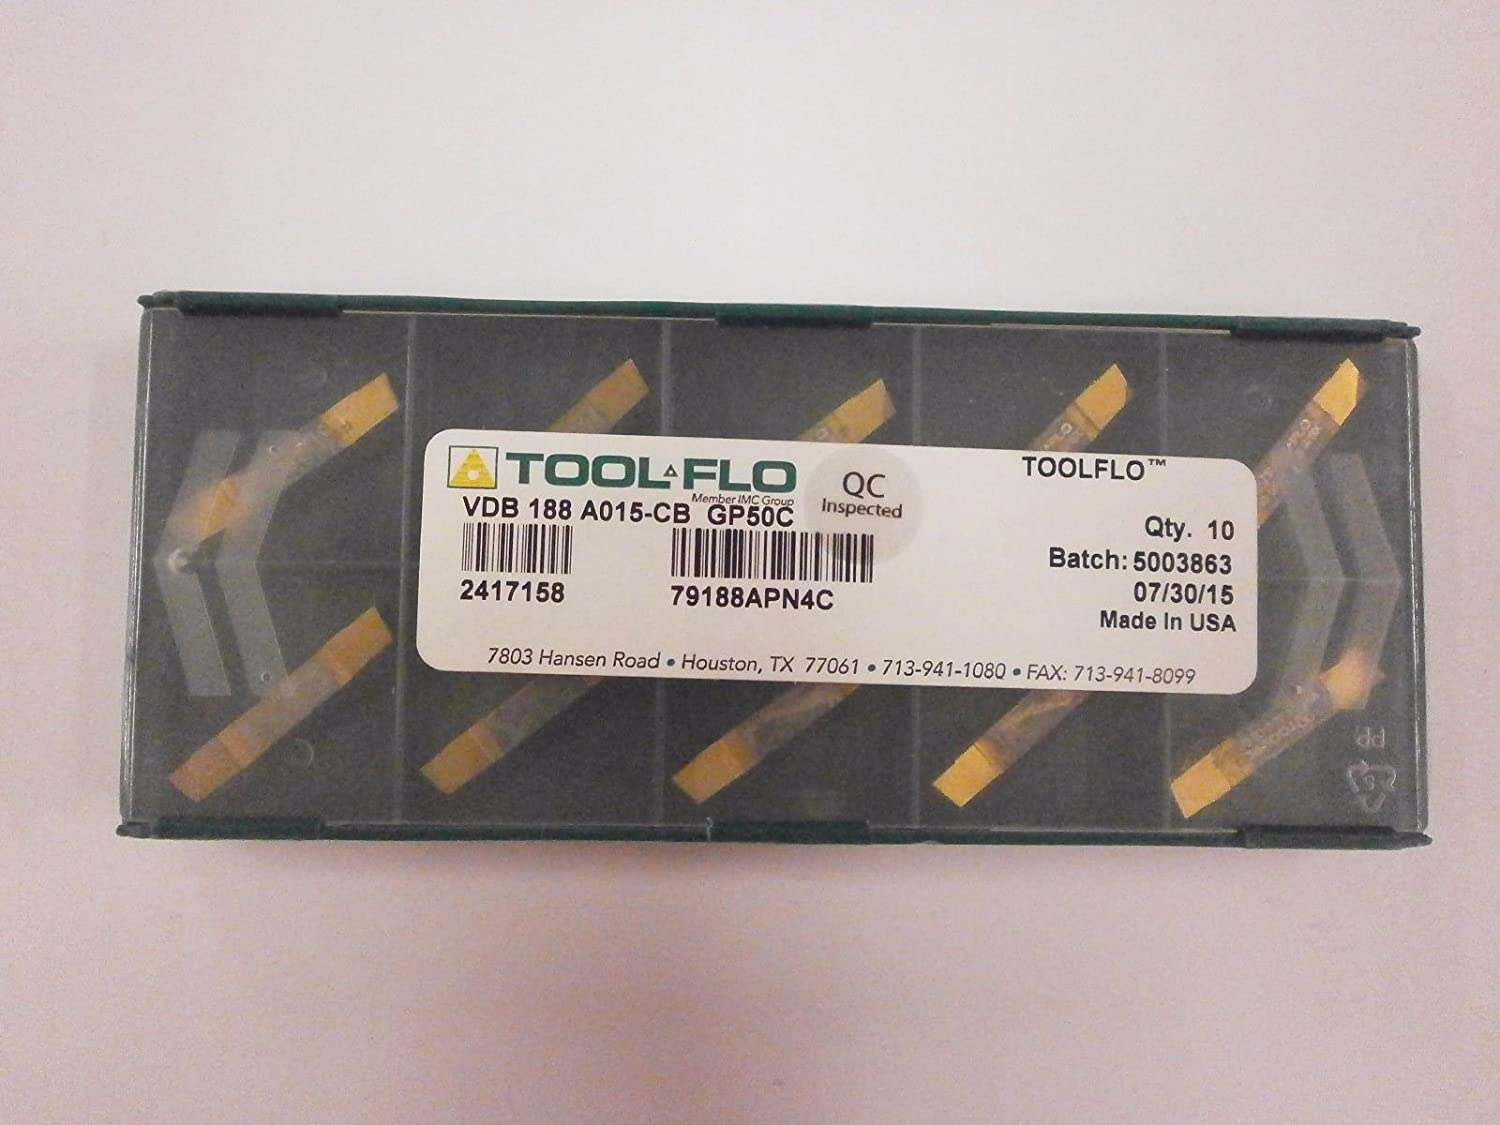 ToolFlo VDB 188A015-CB GP50 Carbide VEE Bottom Deep Grooving Inserts Tool Flo Made in USA 10pc